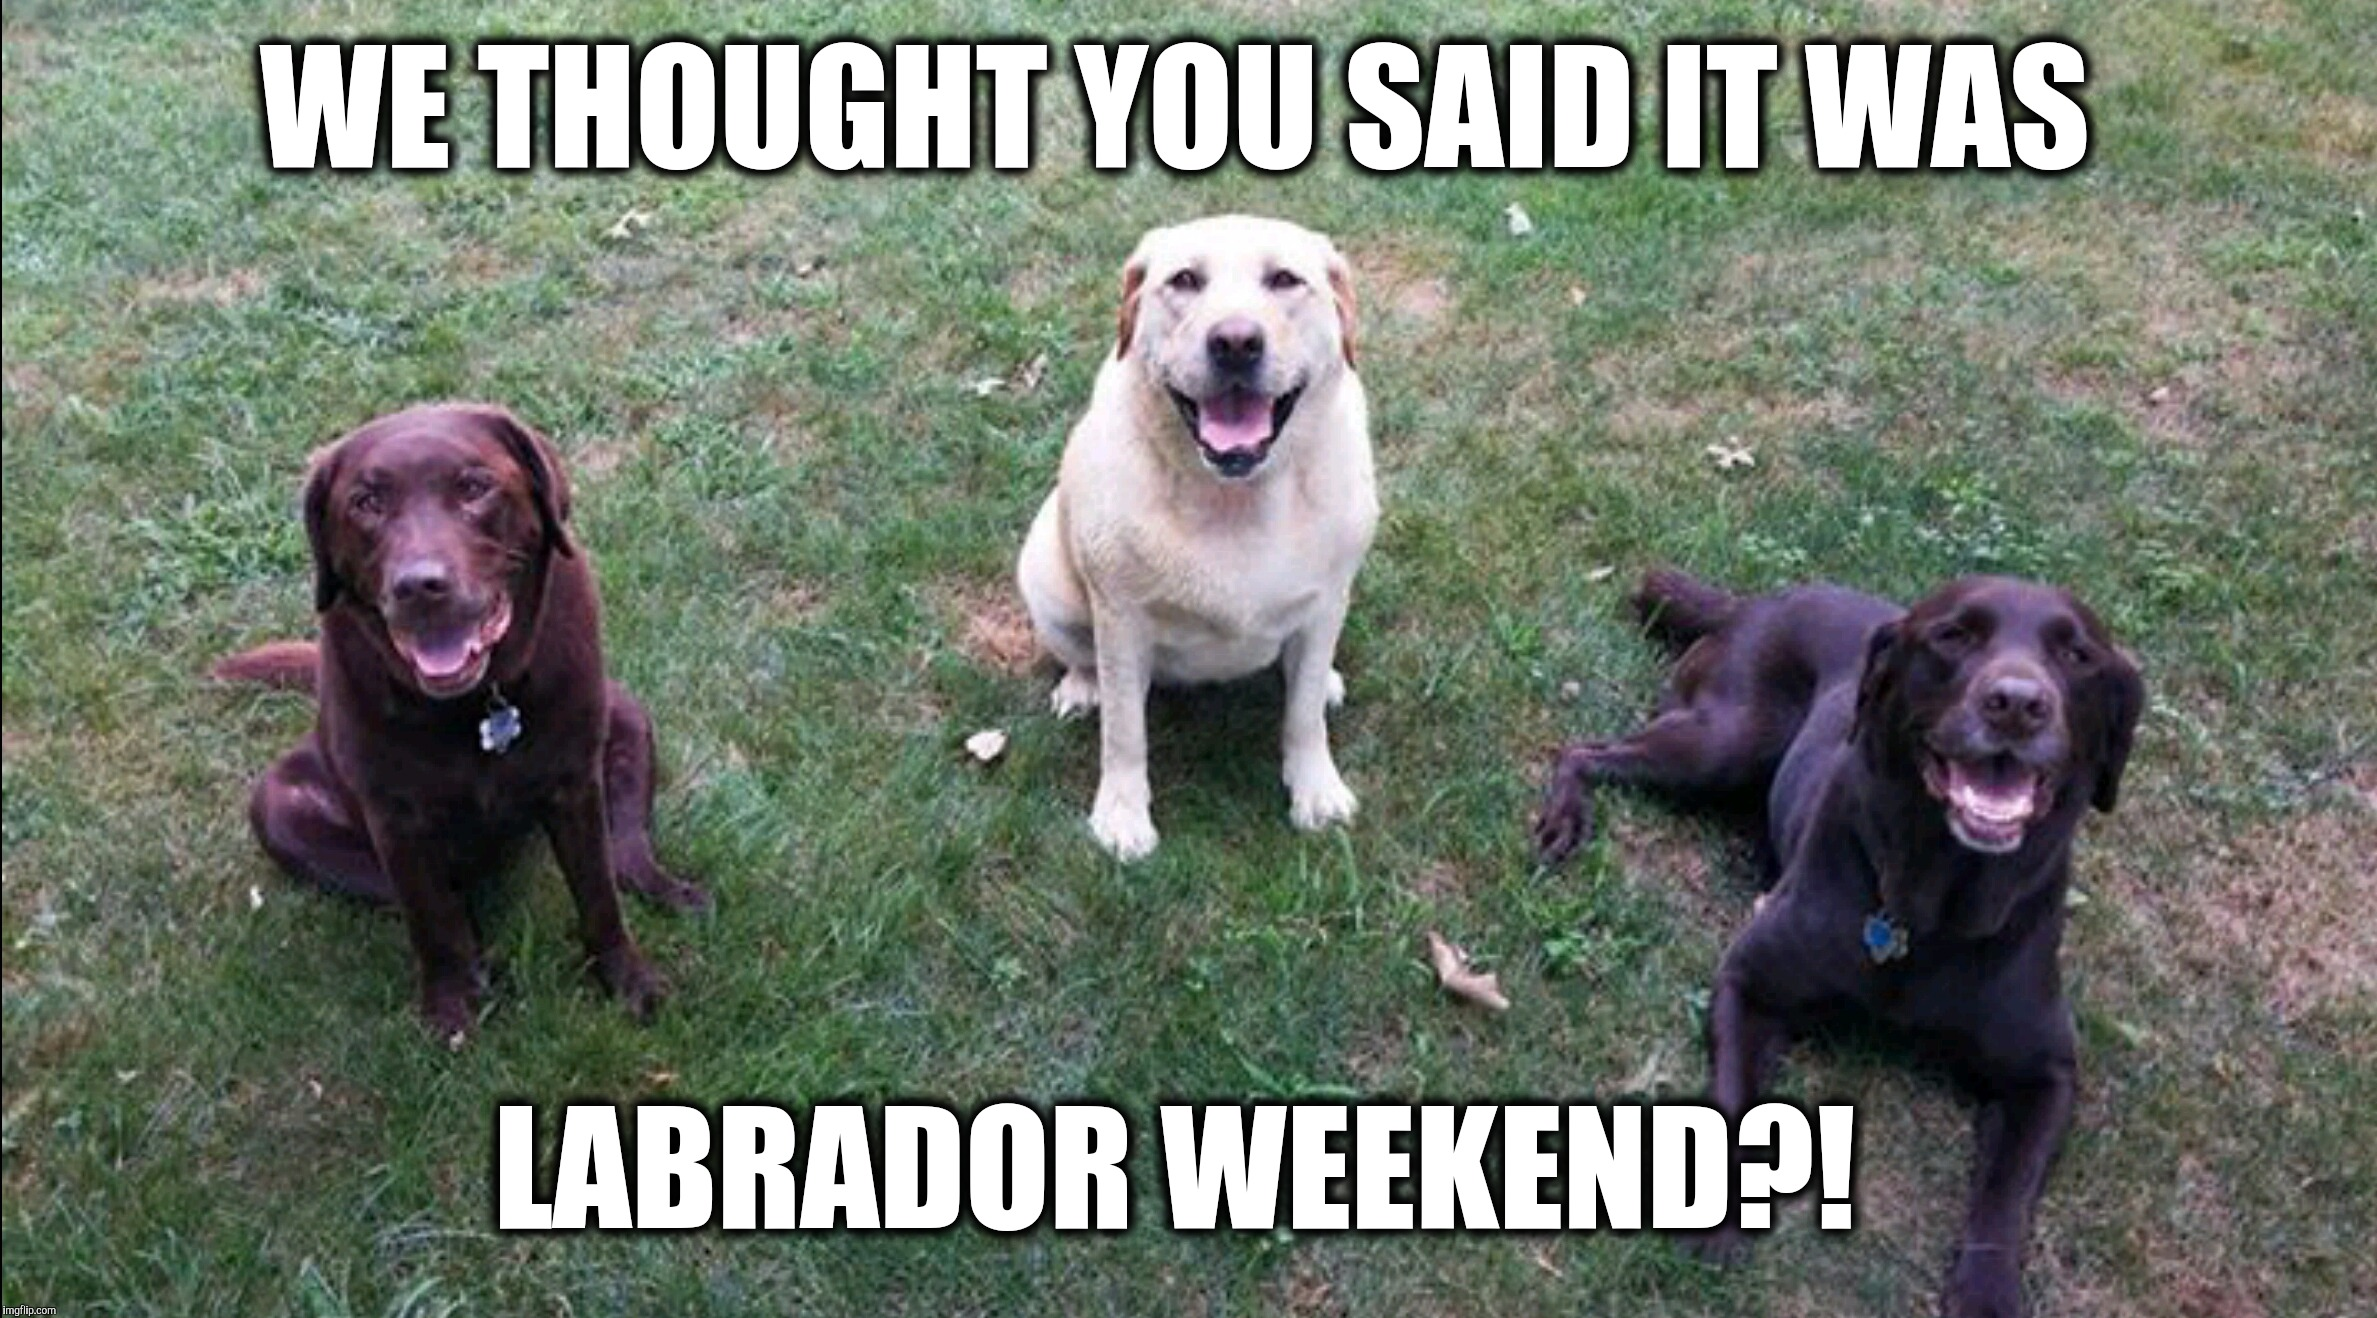 We thought you said it was Labrador weekend?!  |  WE THOUGHT YOU SAID IT WAS; LABRADOR WEEKEND?! | image tagged in labs,chuckie the chocolate lab,labor day,labrador,weekend,holiday | made w/ Imgflip meme maker